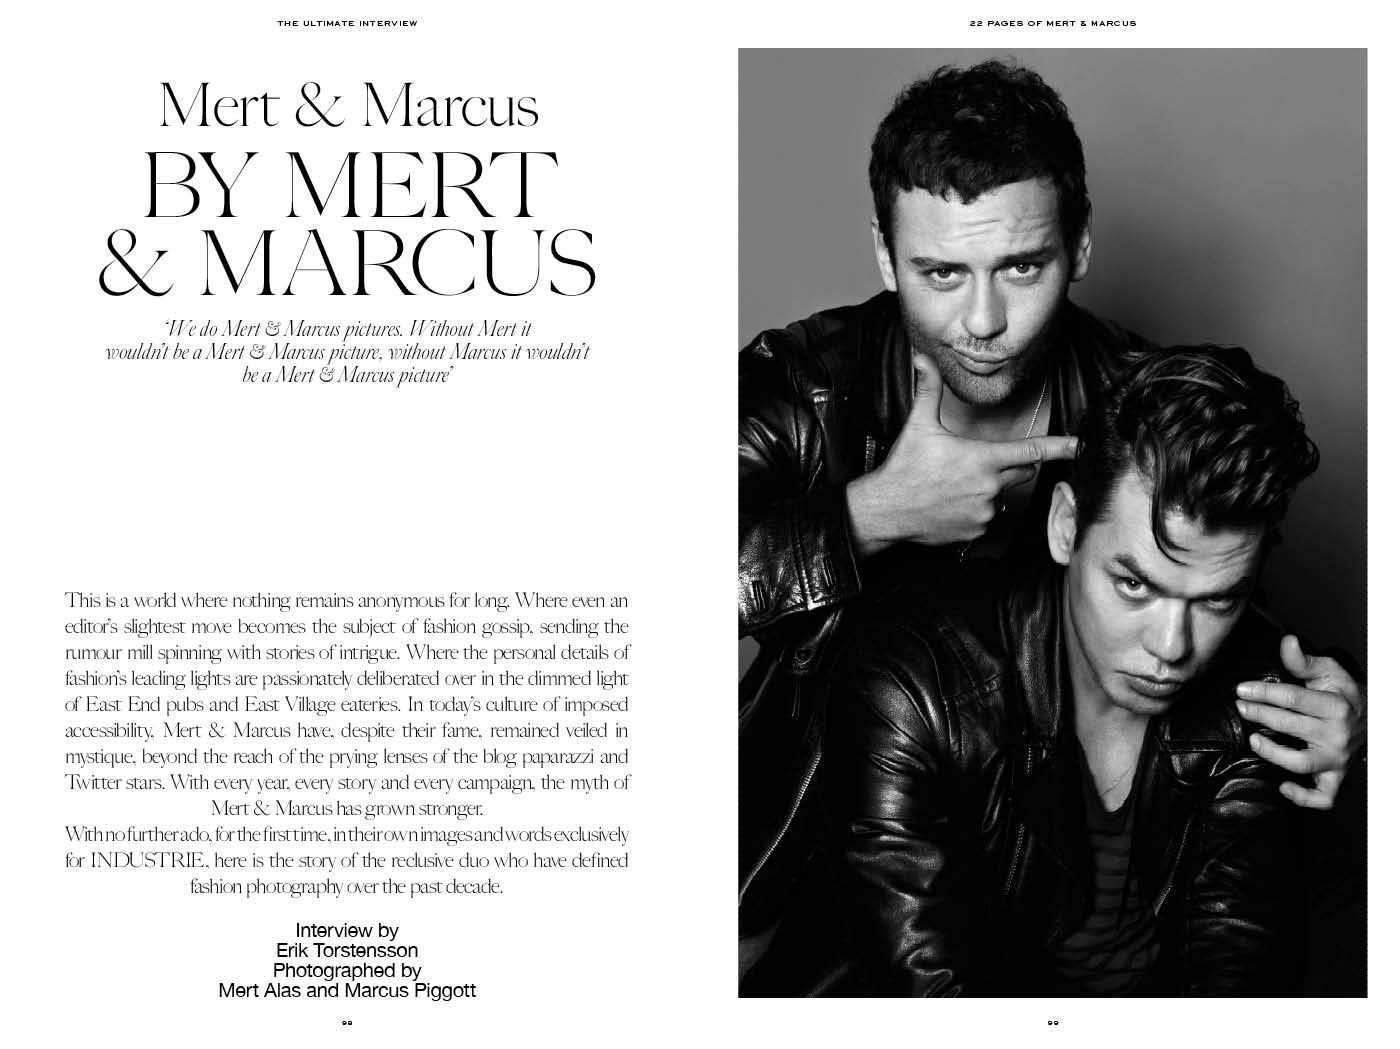 Mert and Marcus (1974) is the working name of two fashion photographers (Mert Alan and Marcus Piggott) who work together on a collaborative basis They met in England in 1994 after having worked for a brief period in different areas, Alas in classical music and Piggott in graphic design. When they showed their first photos to Dazed and Confused, the London fashion magazine, they immediately made the cover.